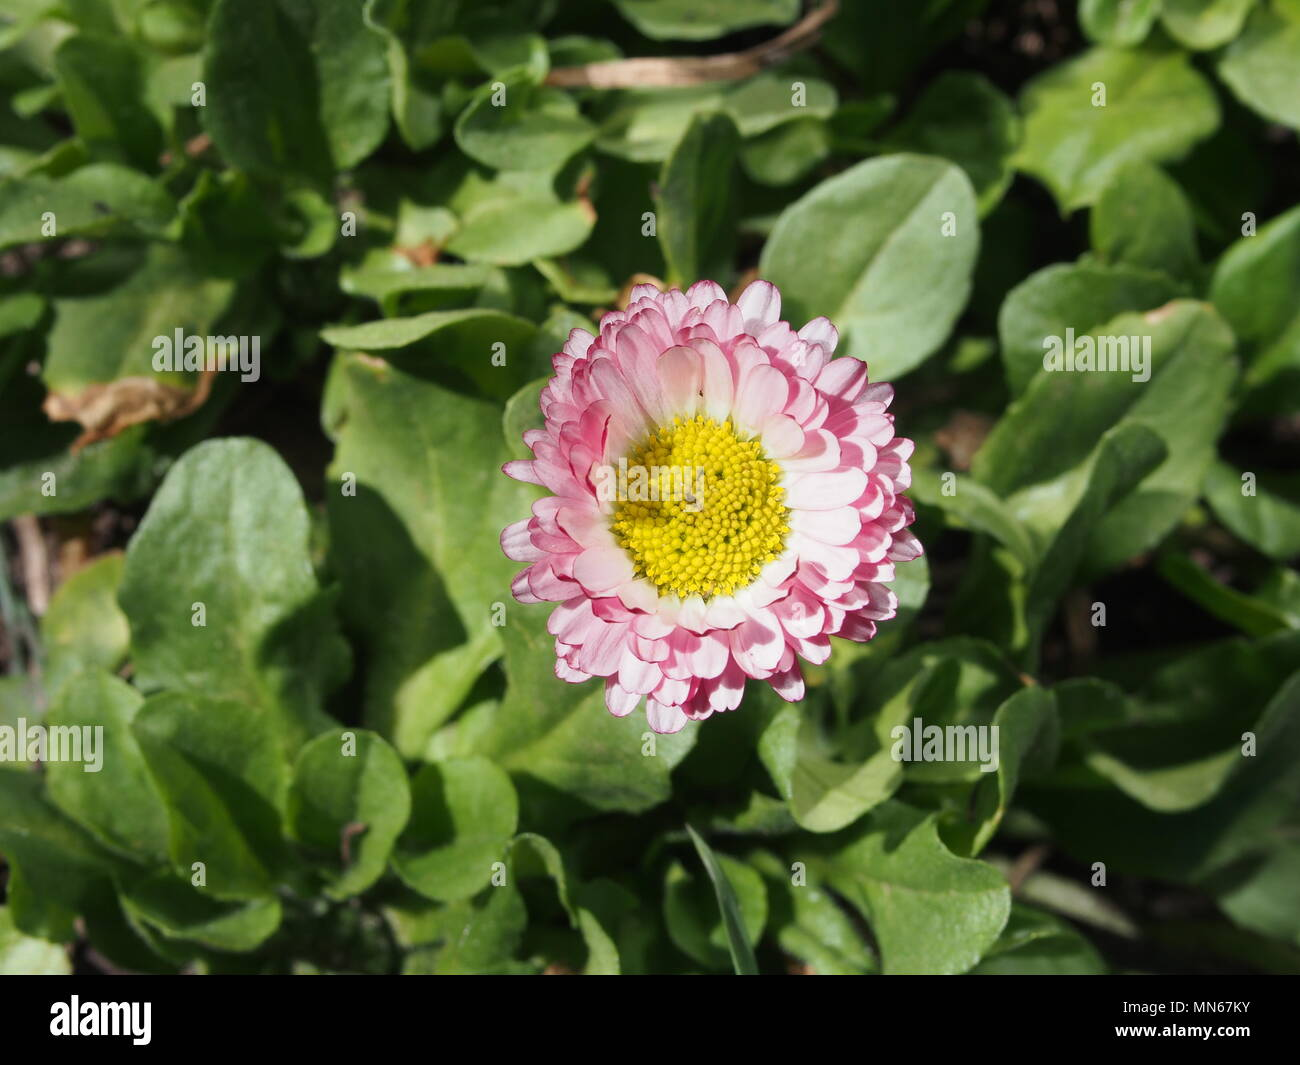 Blooming pink Bud daisies. Garden flower. Close up. Stock Photo